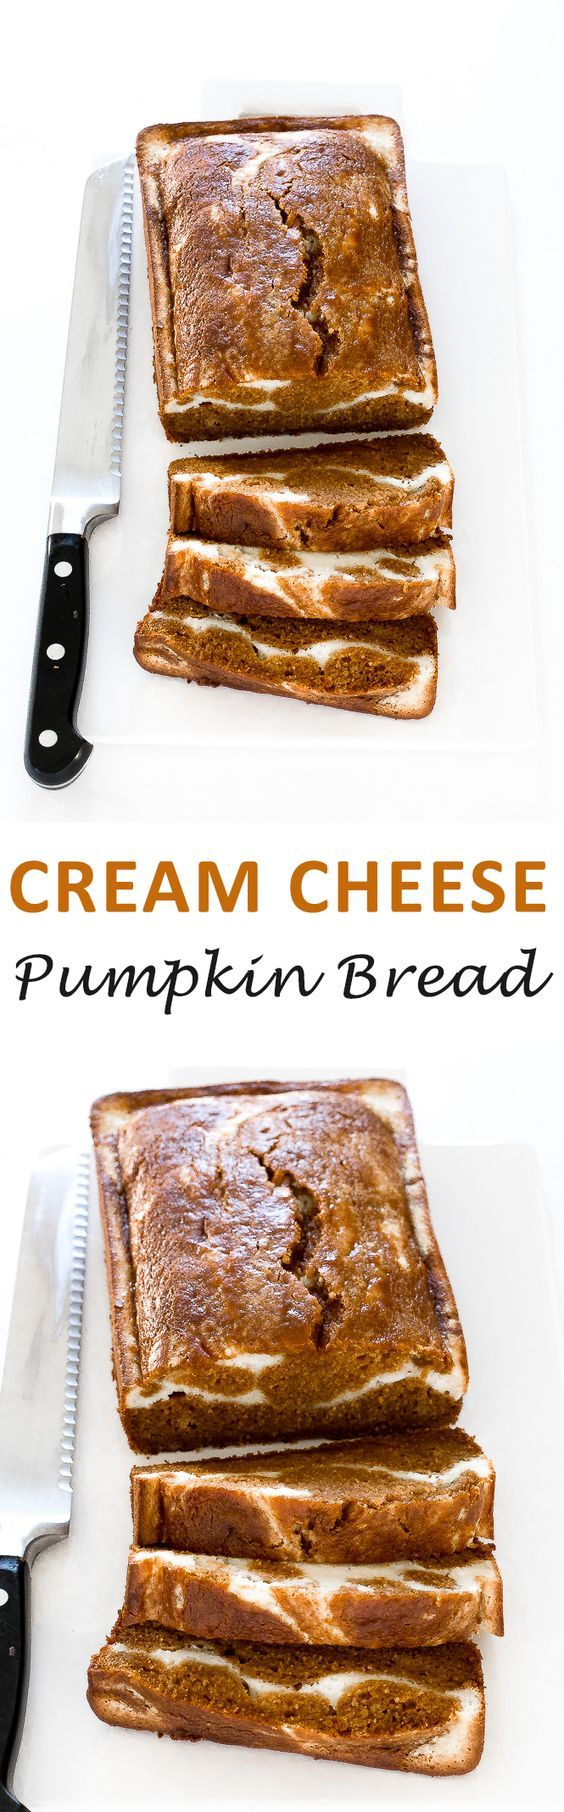 Pumpkin Cream Cheese Bread. Super soft, moist and perfectly spiced! The perfect breakfast or dessert for Fall! | chefsavvy.com #recipe #pumpkin #bread #cream #cheese #fall #dessert #breakfast